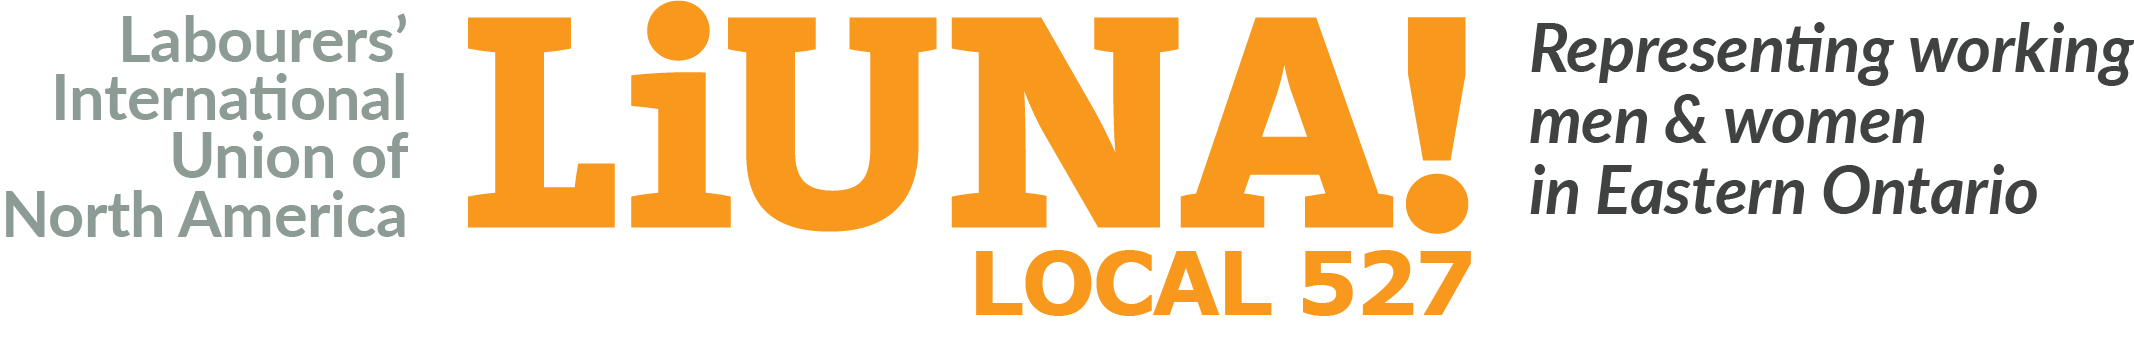 LiUNA Local 527 Logo